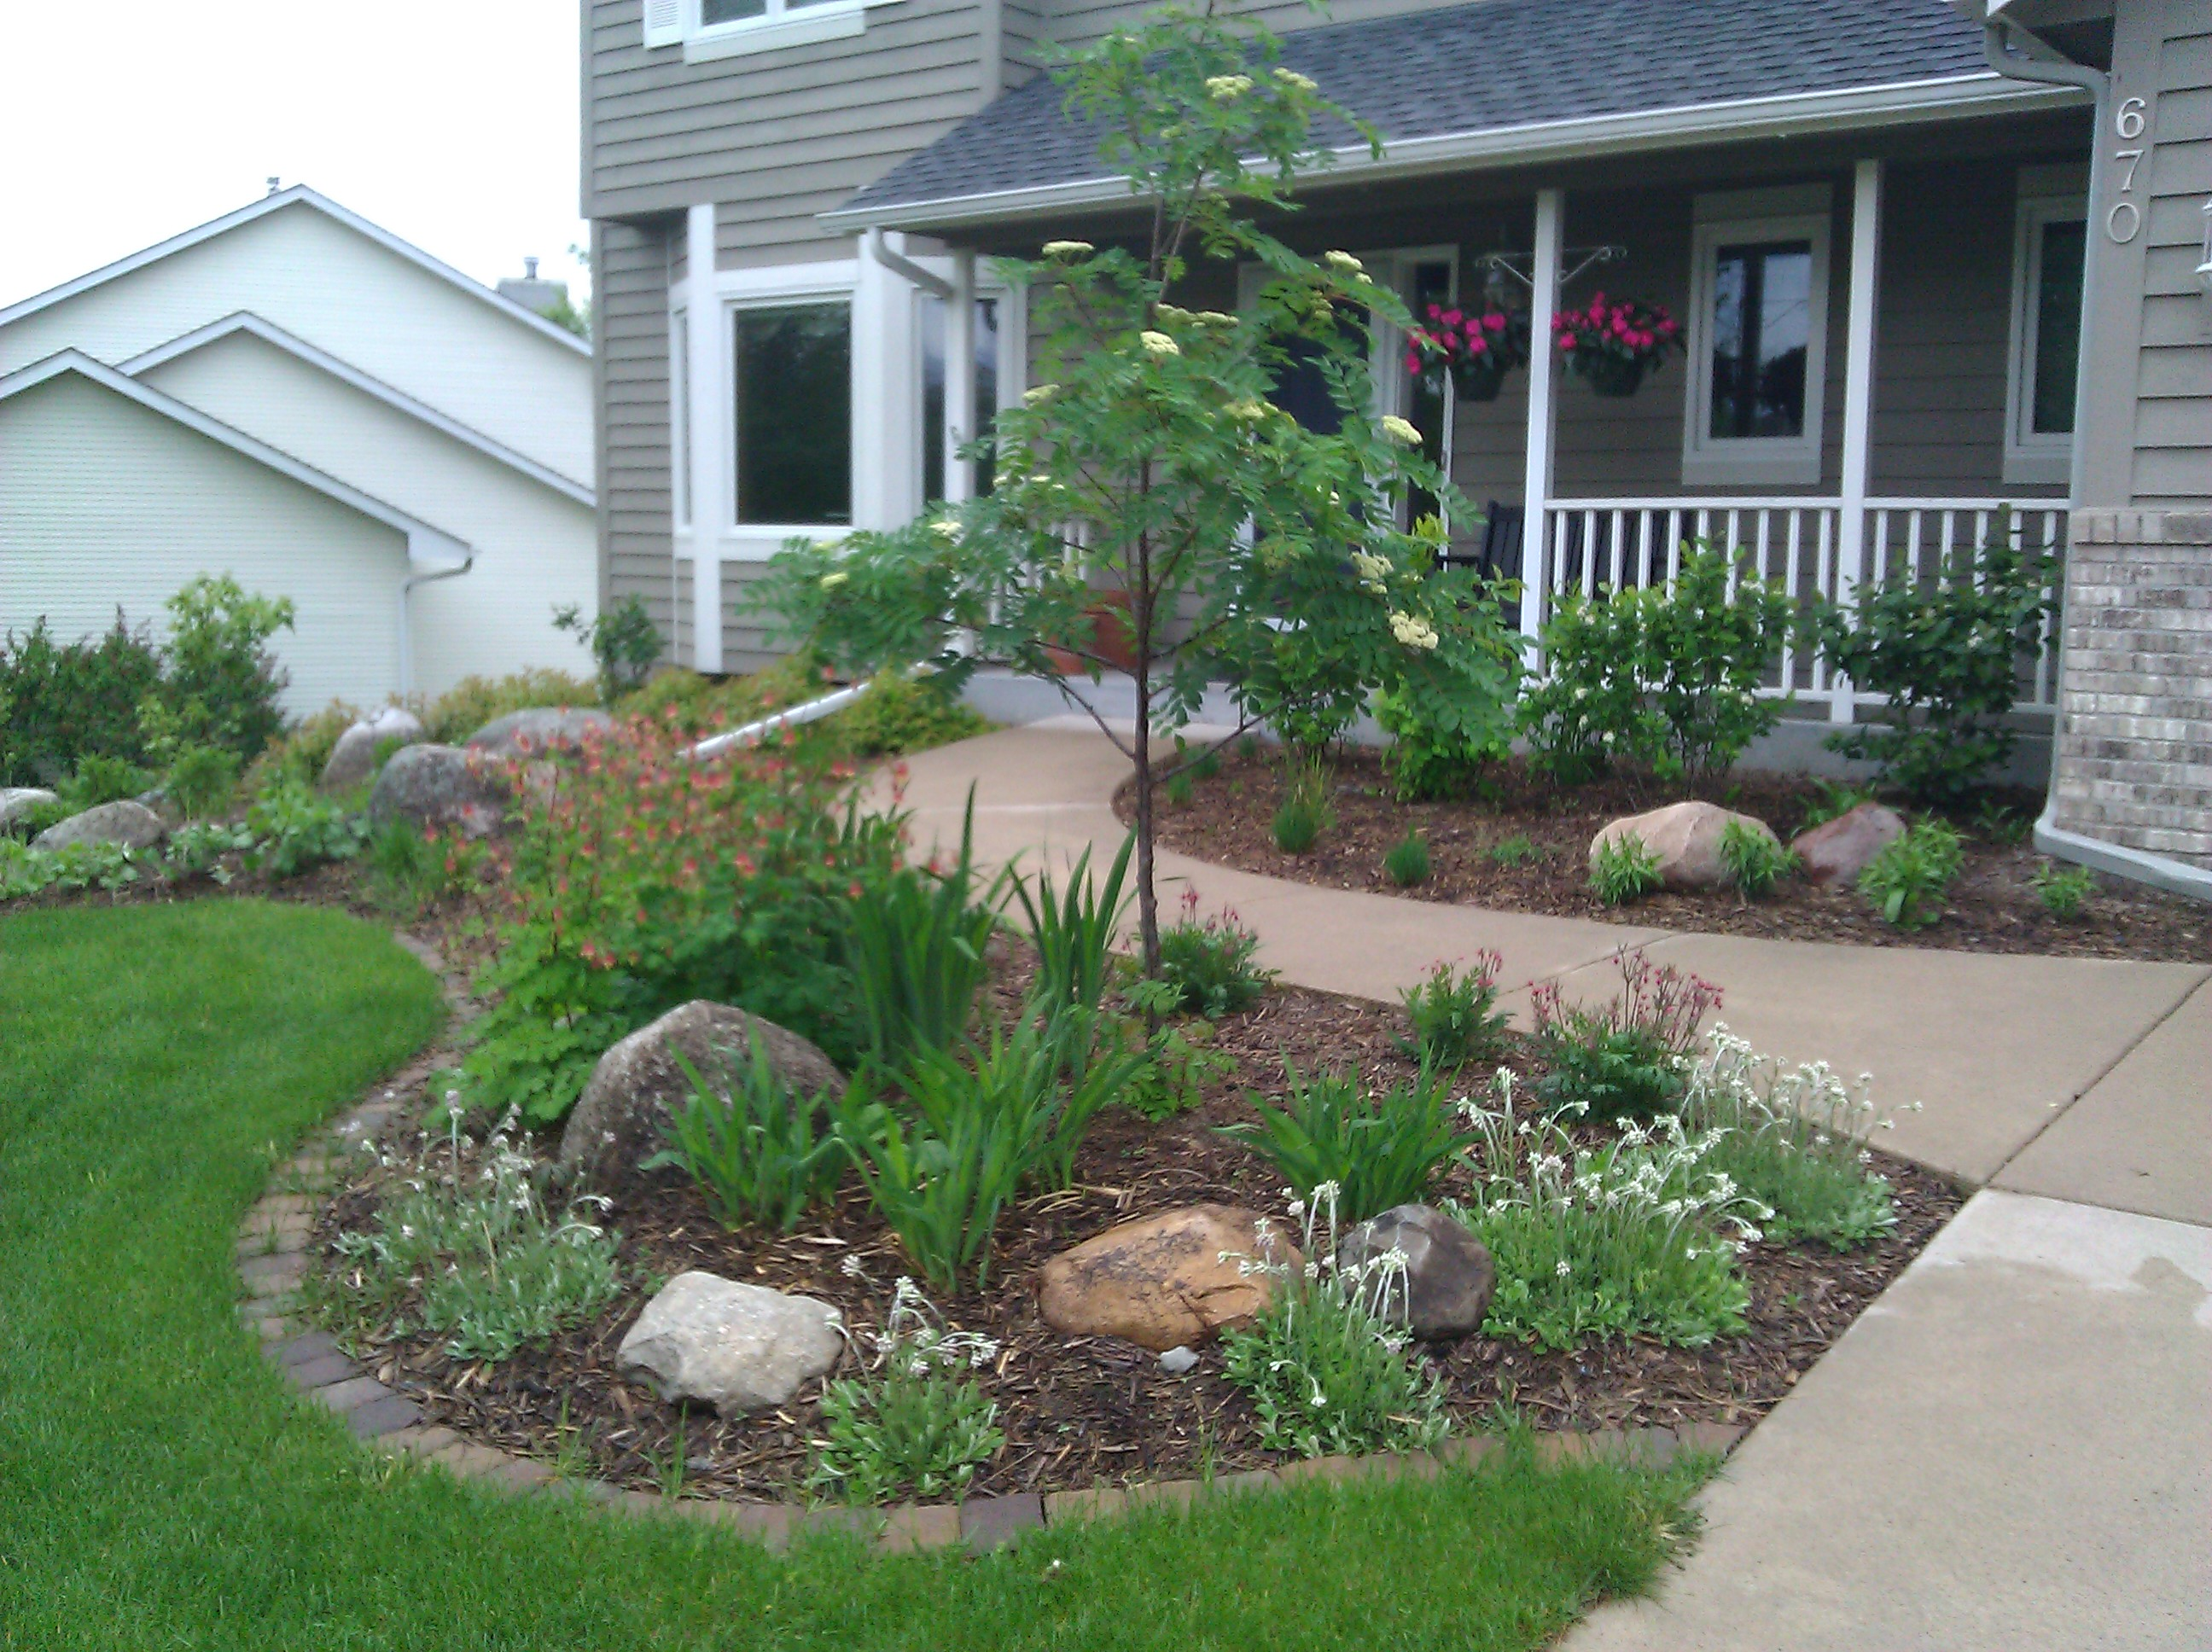 garden-and-patio-small-front-yard-landscaping-house-design-with-various-plants-flowers-trees-rocks-c